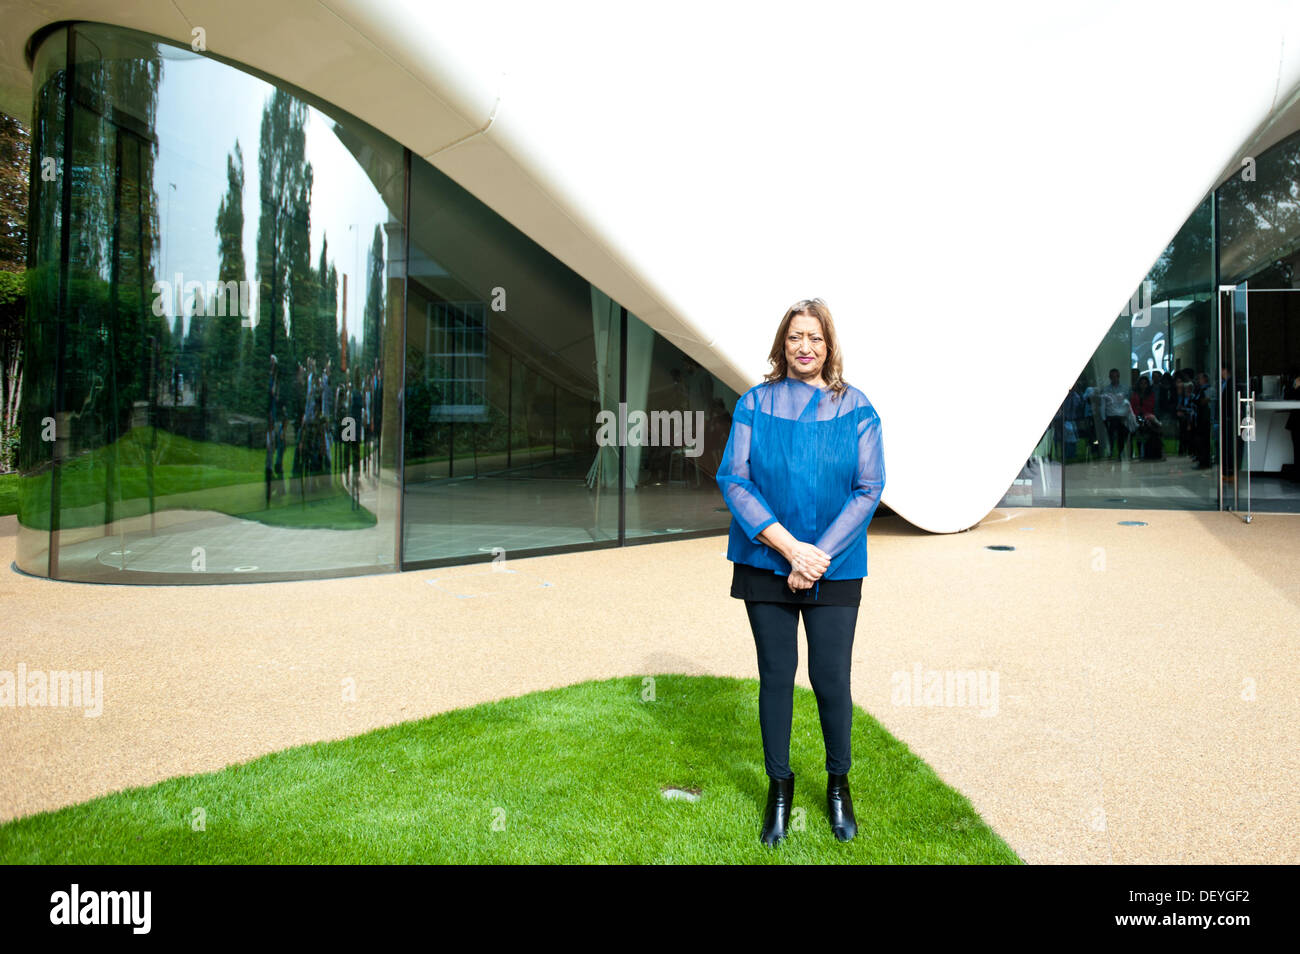 London, UK - 25 September 2013: architect Zaha Hadid poses for pictures in front of the new Serpentine Sackler Gallery Stock Photo